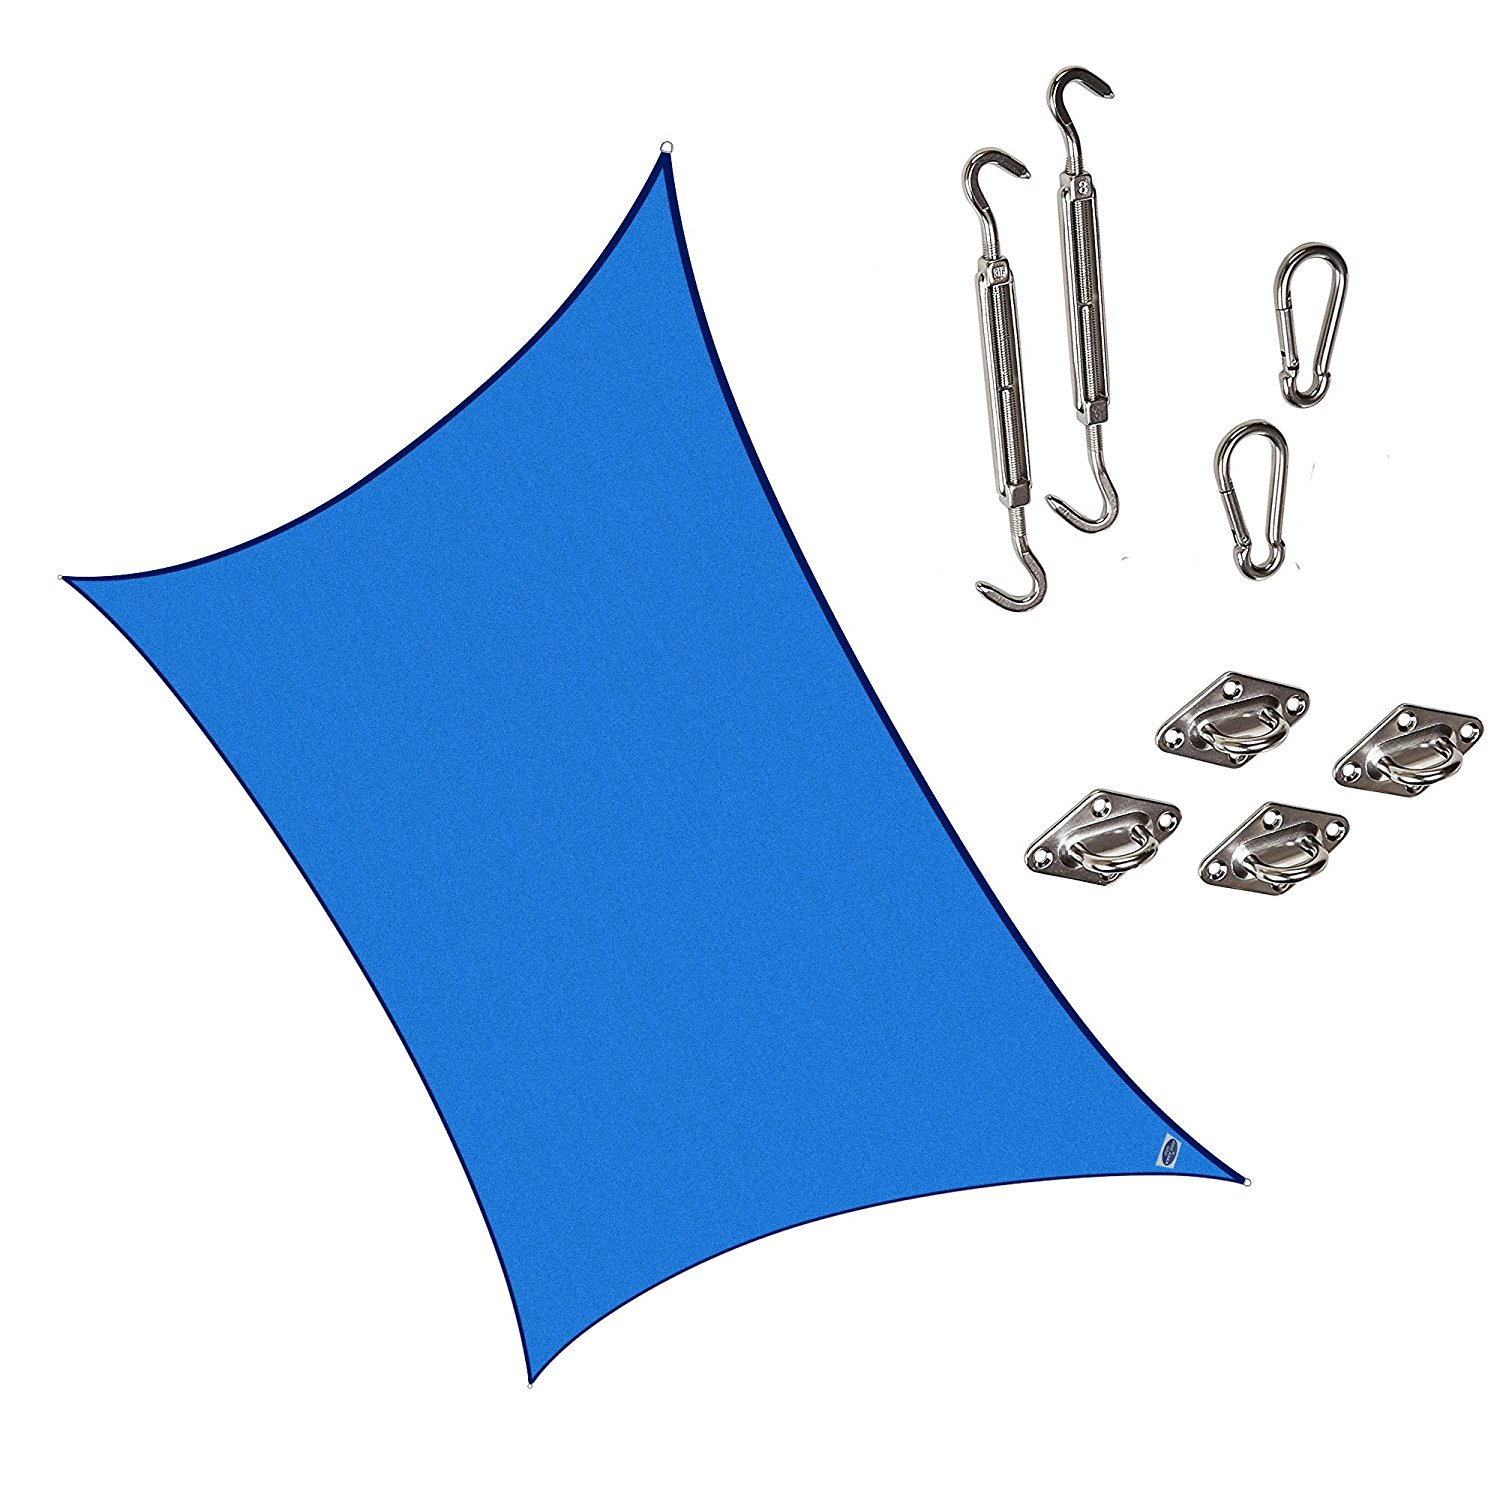 Cool Area Rectangle 9'10'' X 13' Sun Shade Sail with Stainless Steel Hardware Kit, UV Block Fabric Patio Shade Sail in Color Sand